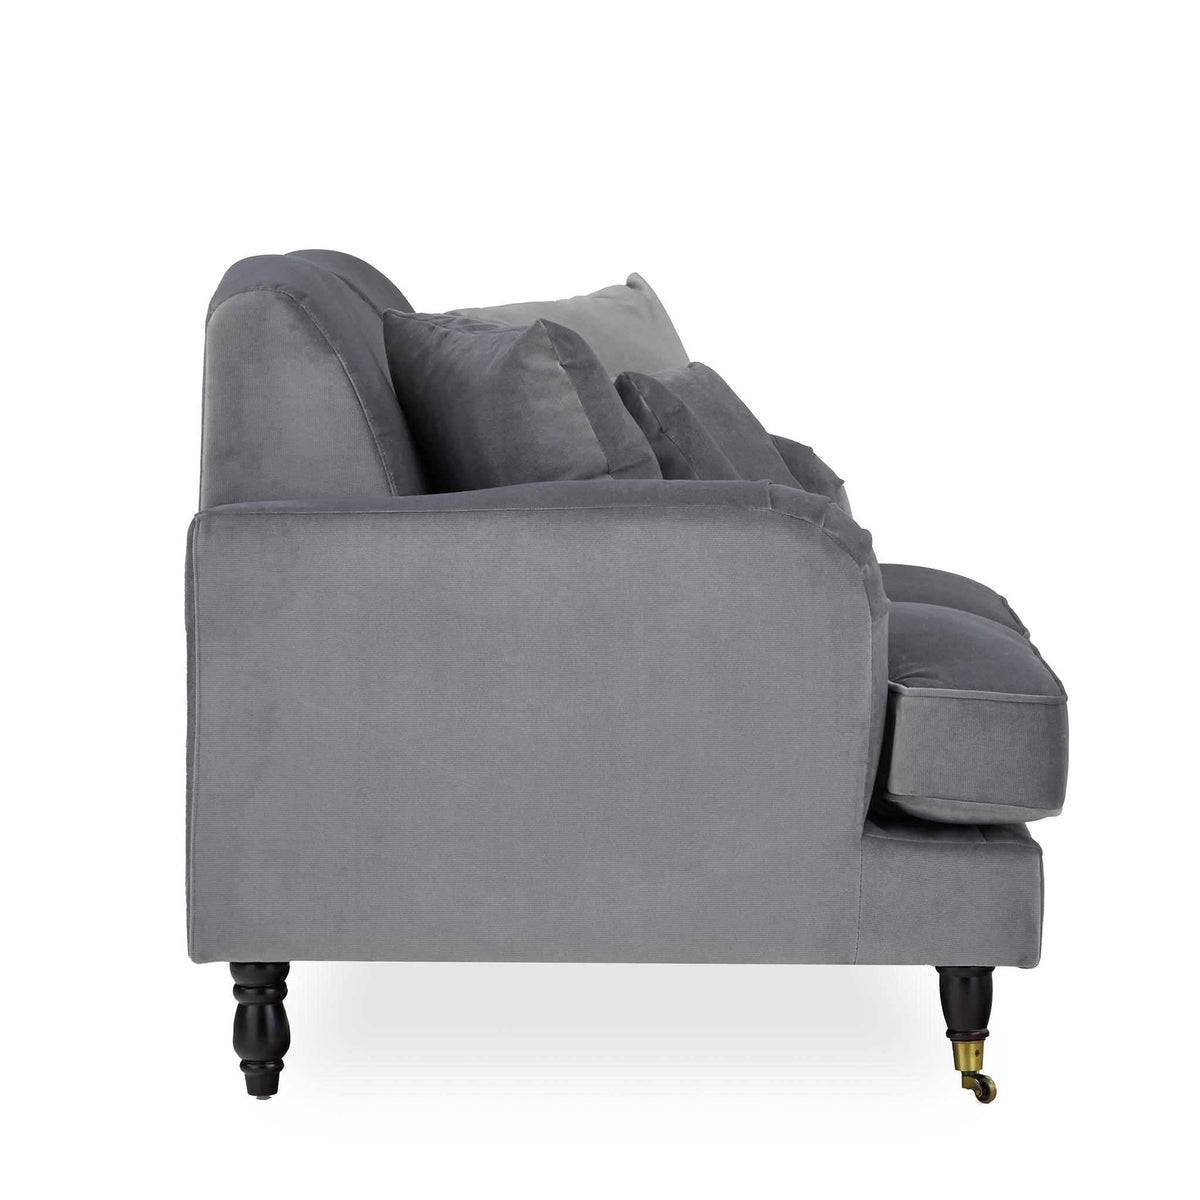 side view of the Piper Grey 2 Seater Sofa from Roseland Furniture